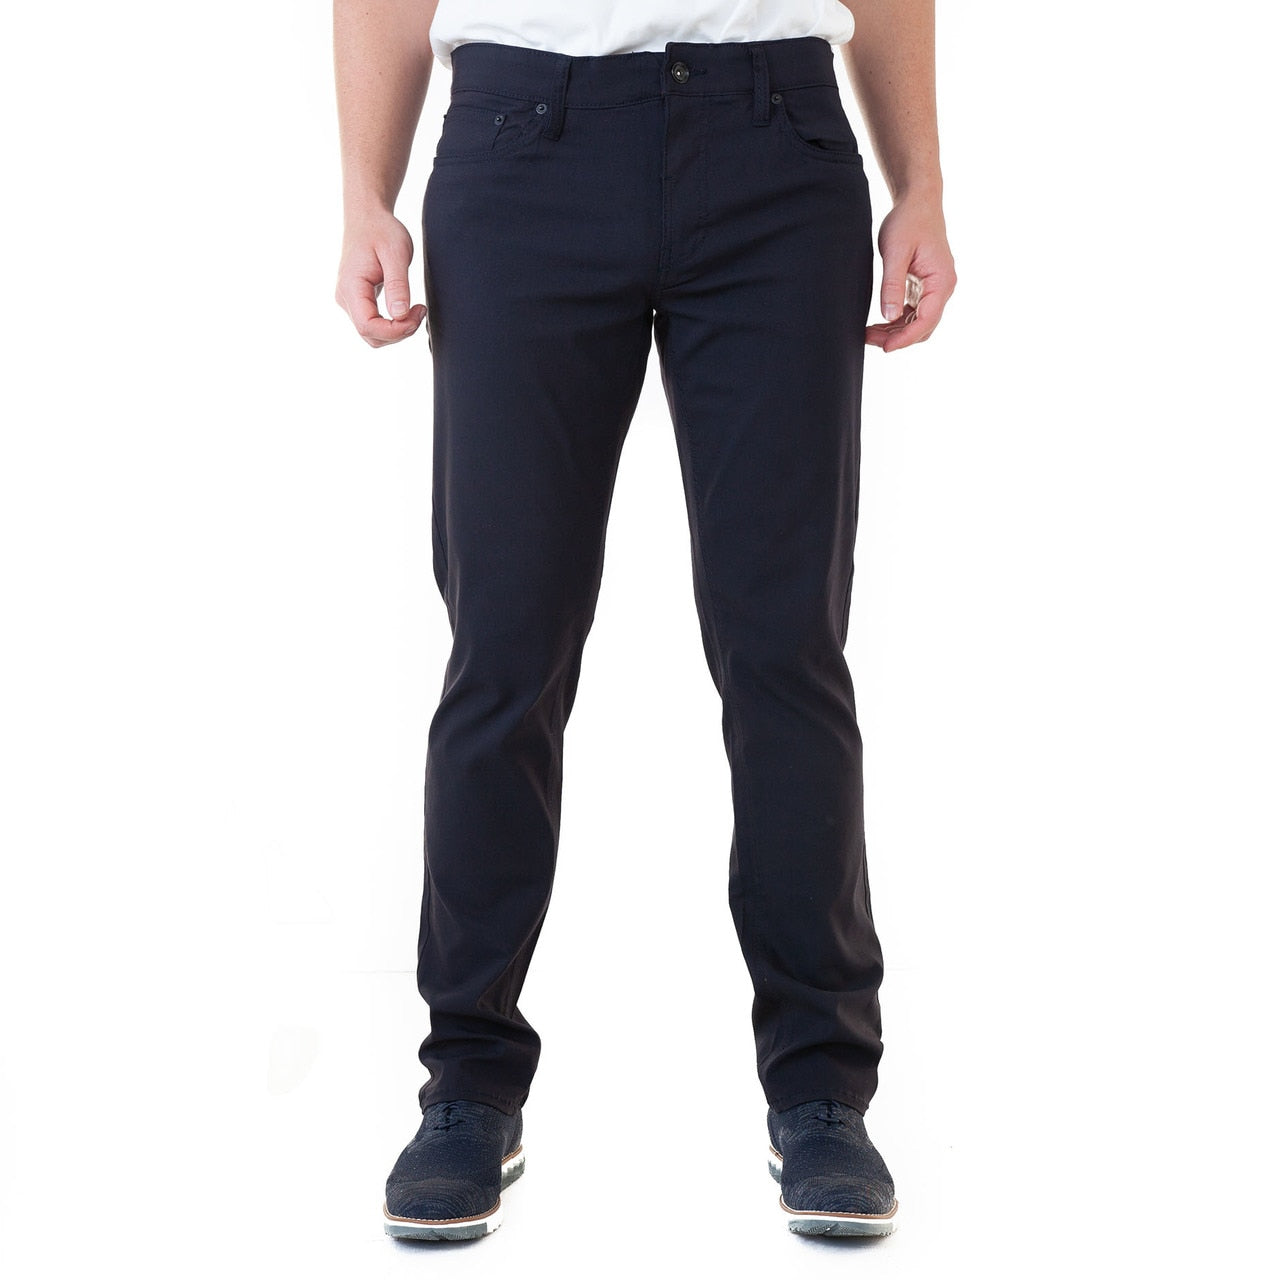 Actiflex Bungee Pant - 110 Smooth Navy